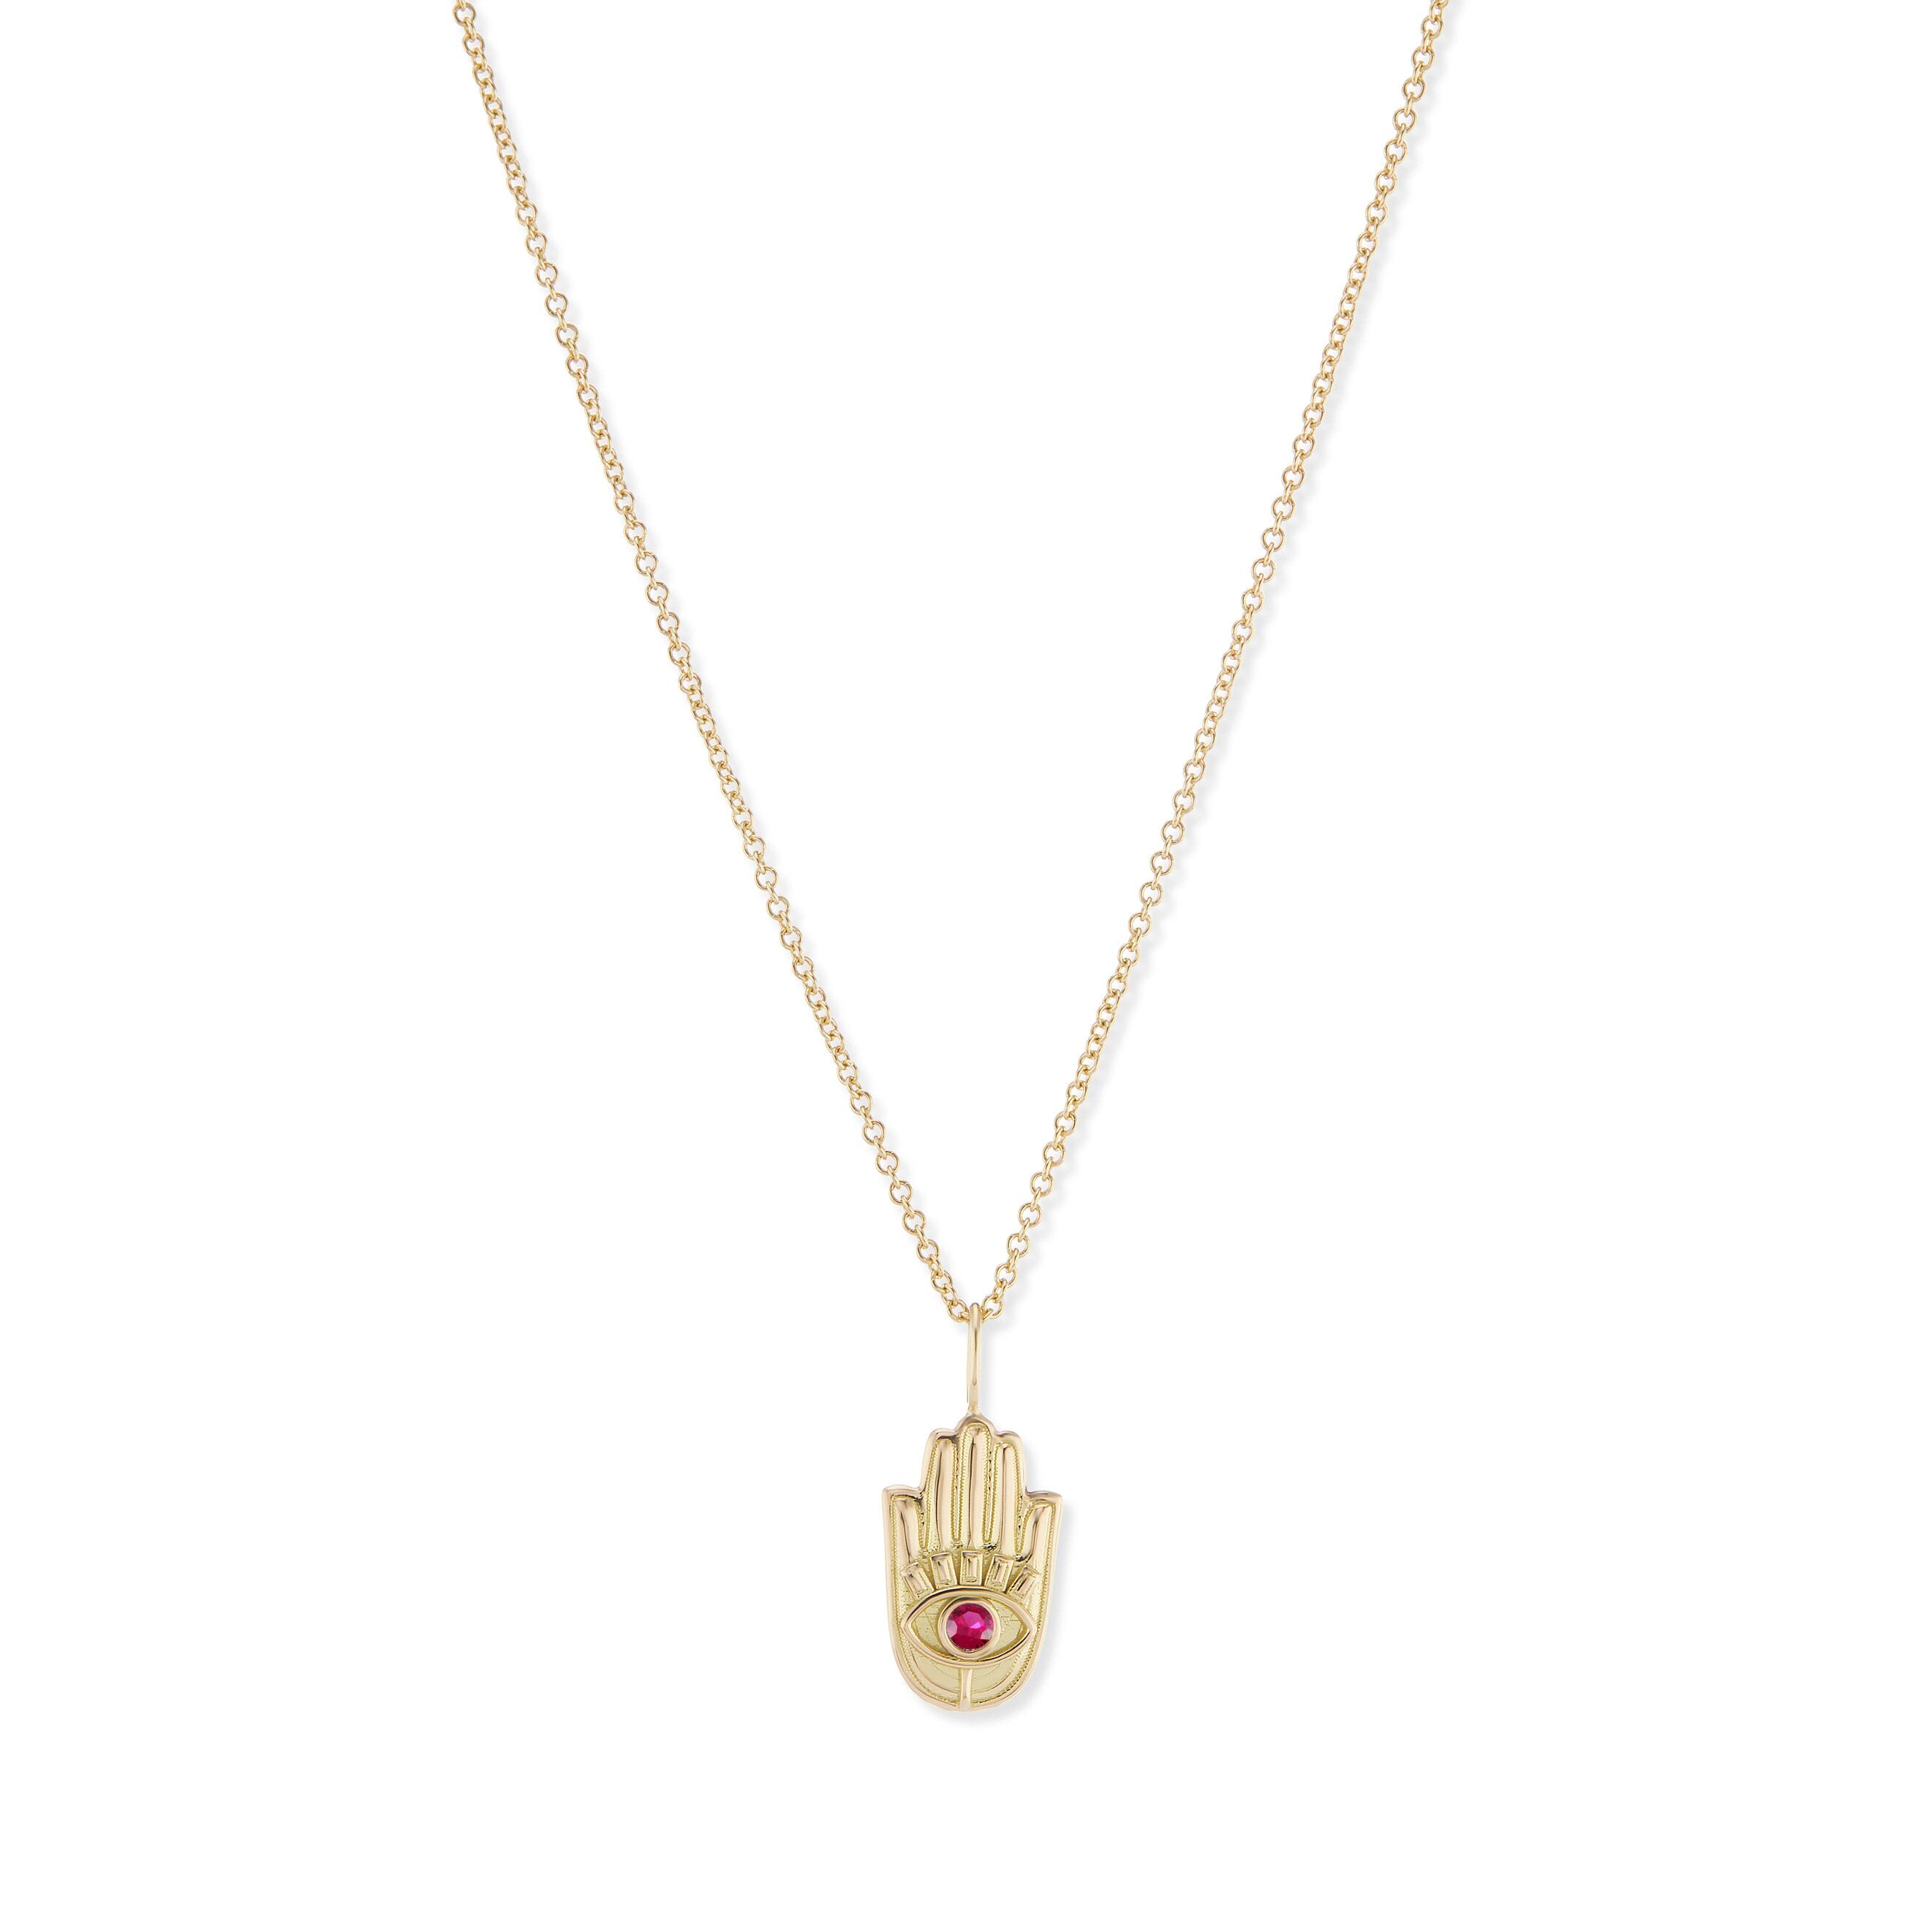 Mini Gold Hamsa Pendant with Stone Eye